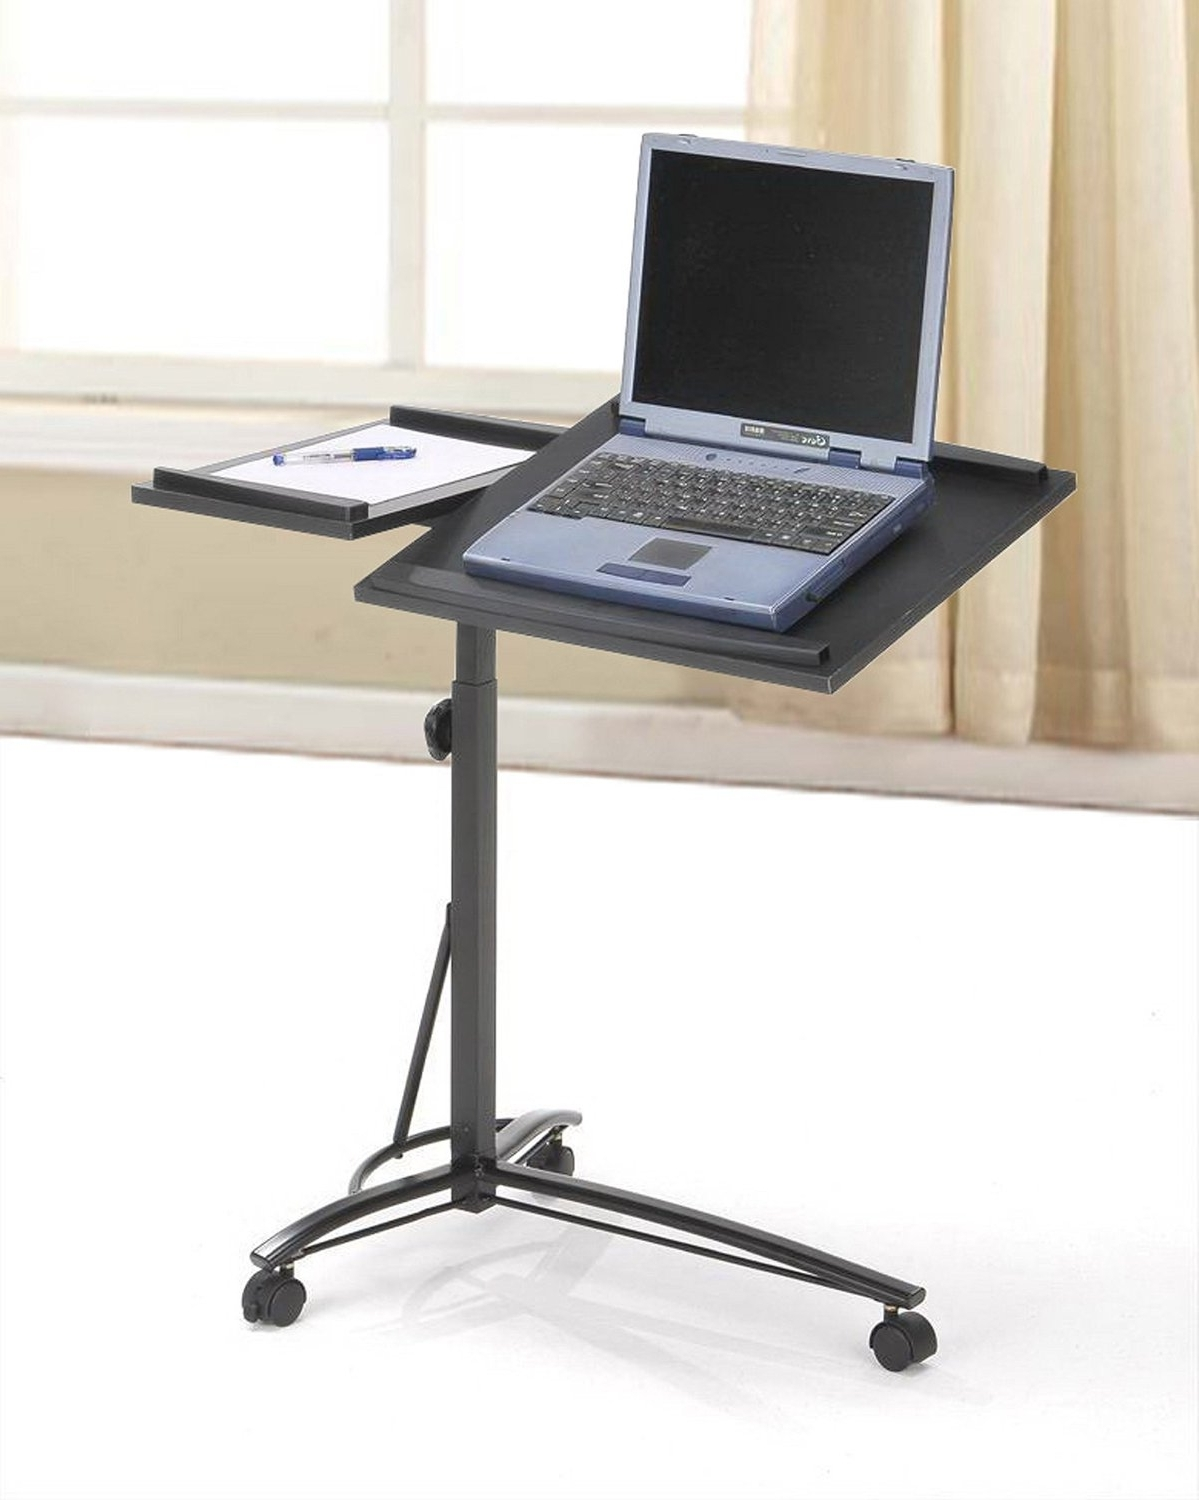 Well Liked Computer Desks With Wheels With Regard To Desk: Interesting Portable Computer Desk On Wheels 2017 Ideas (View 17 of 20)